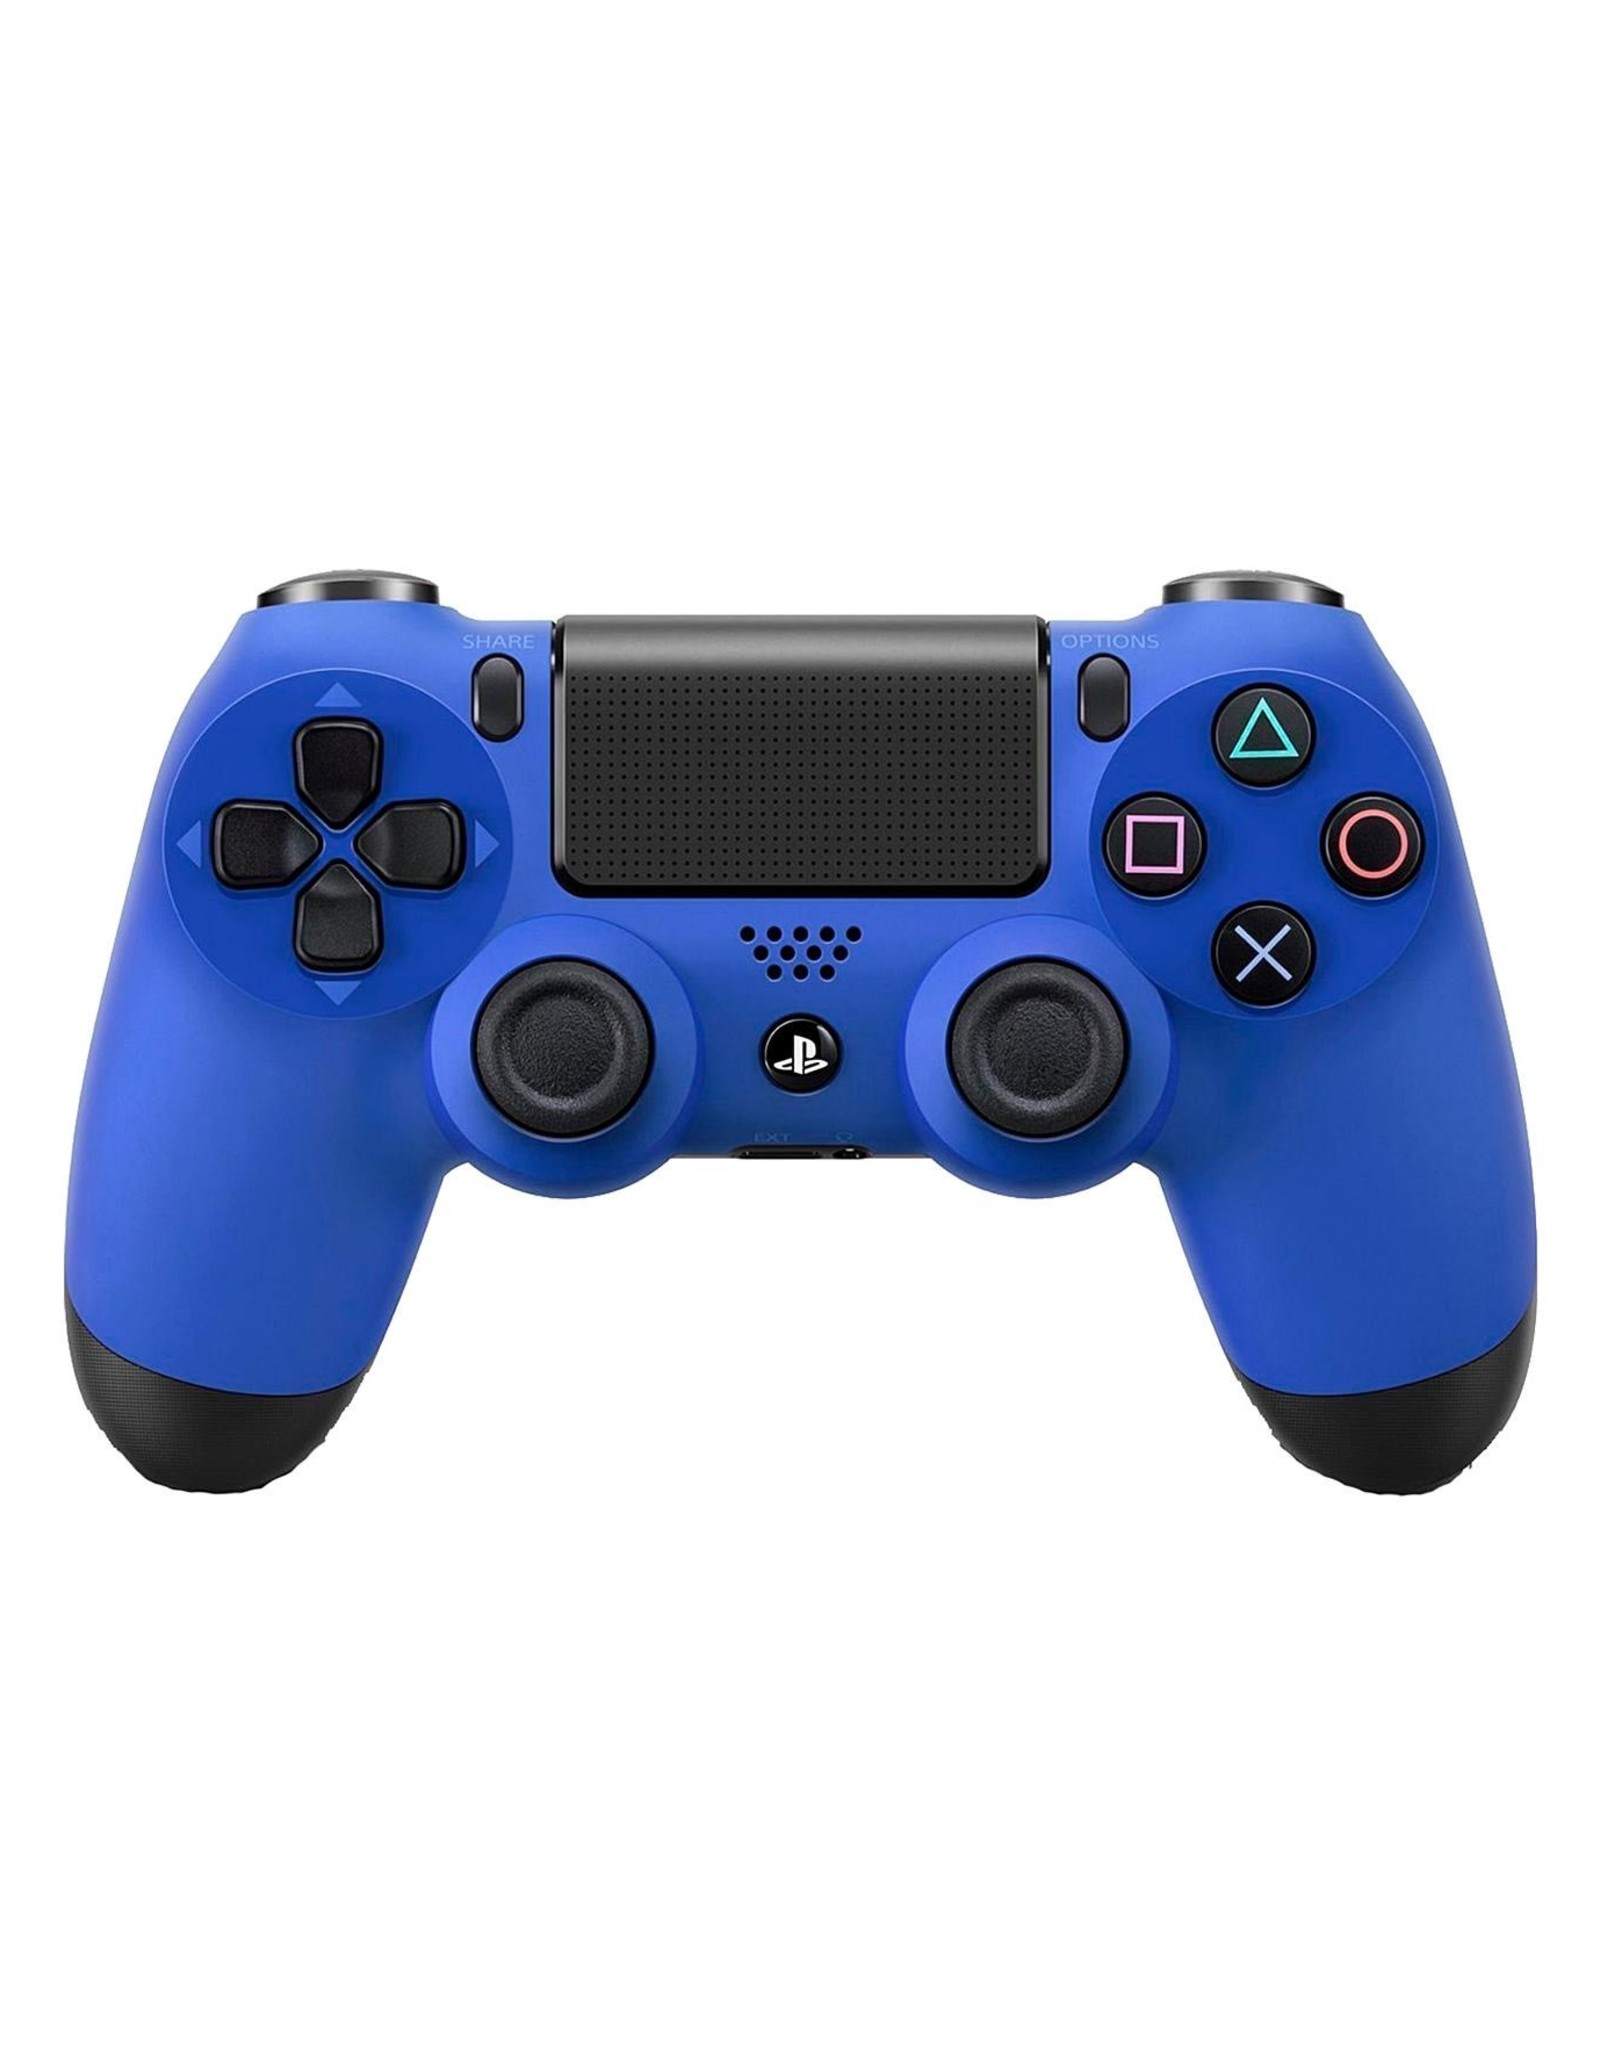 PlayStation DualShock 4 Wireless Controller for PlayStation 4 Blue